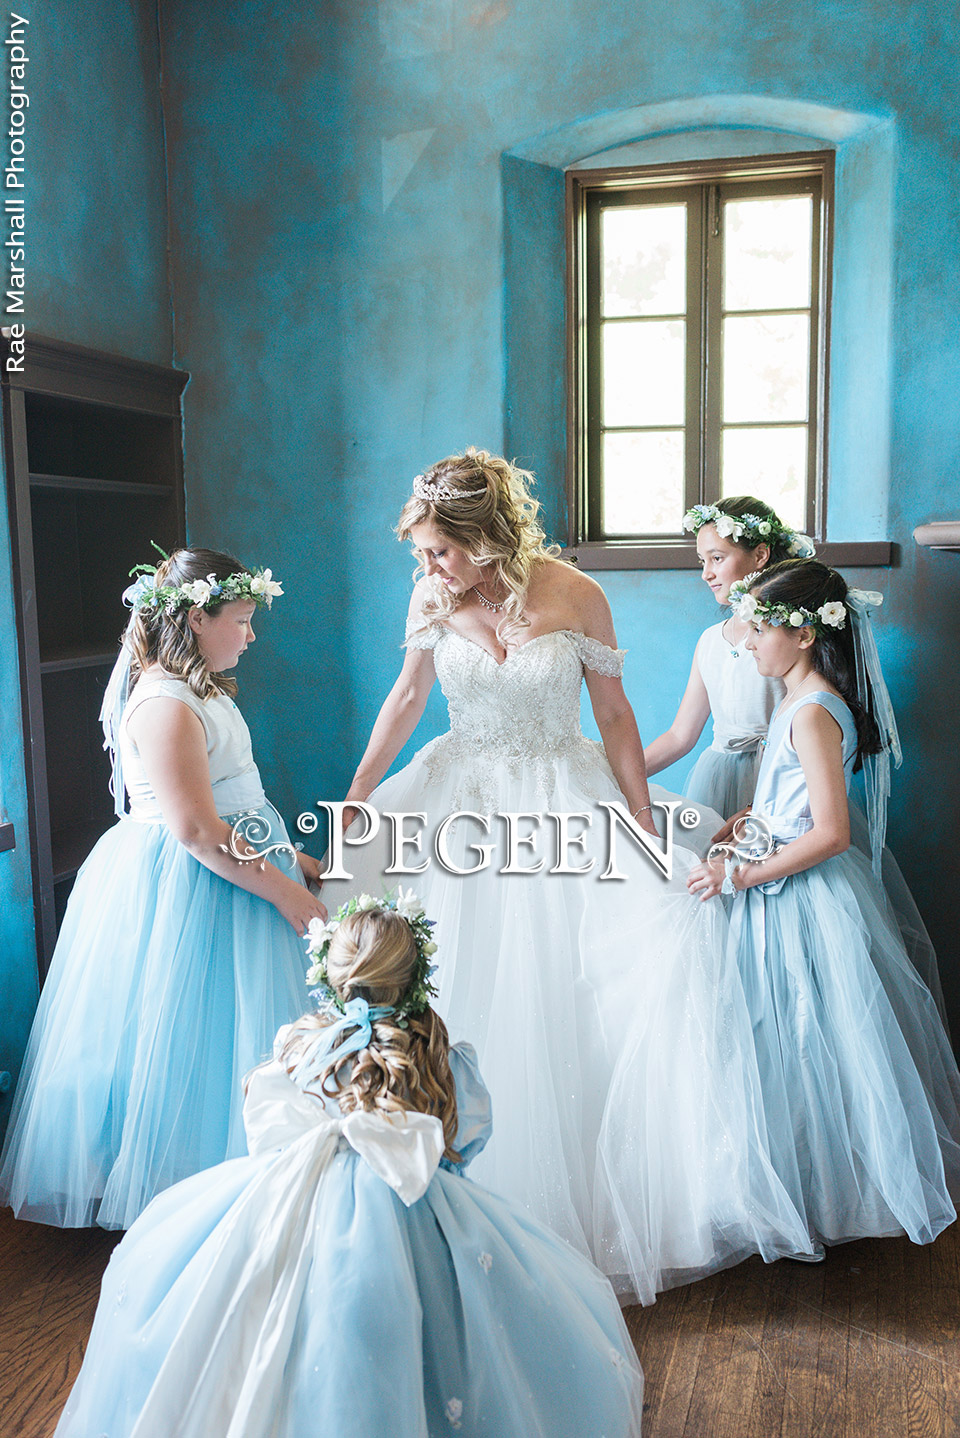 2018 Wedding and Flower Girl Dresses of the Year Winner